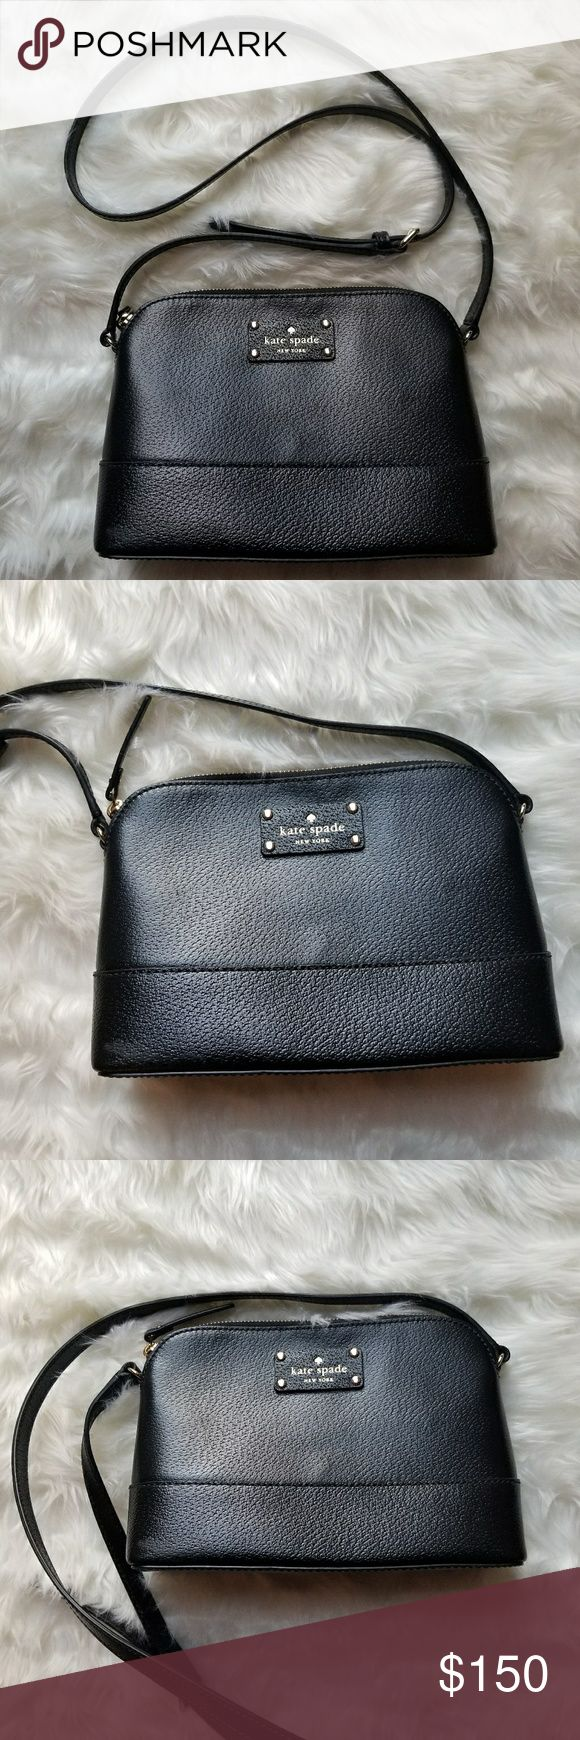 Kate Spade Wellesley Hanna Black Leather Crossbody Kate Spade Wellesley Hanna Black Leather Crossbody.. Used a few times. Excellent condition. kate spade Bags Crossbody Bags